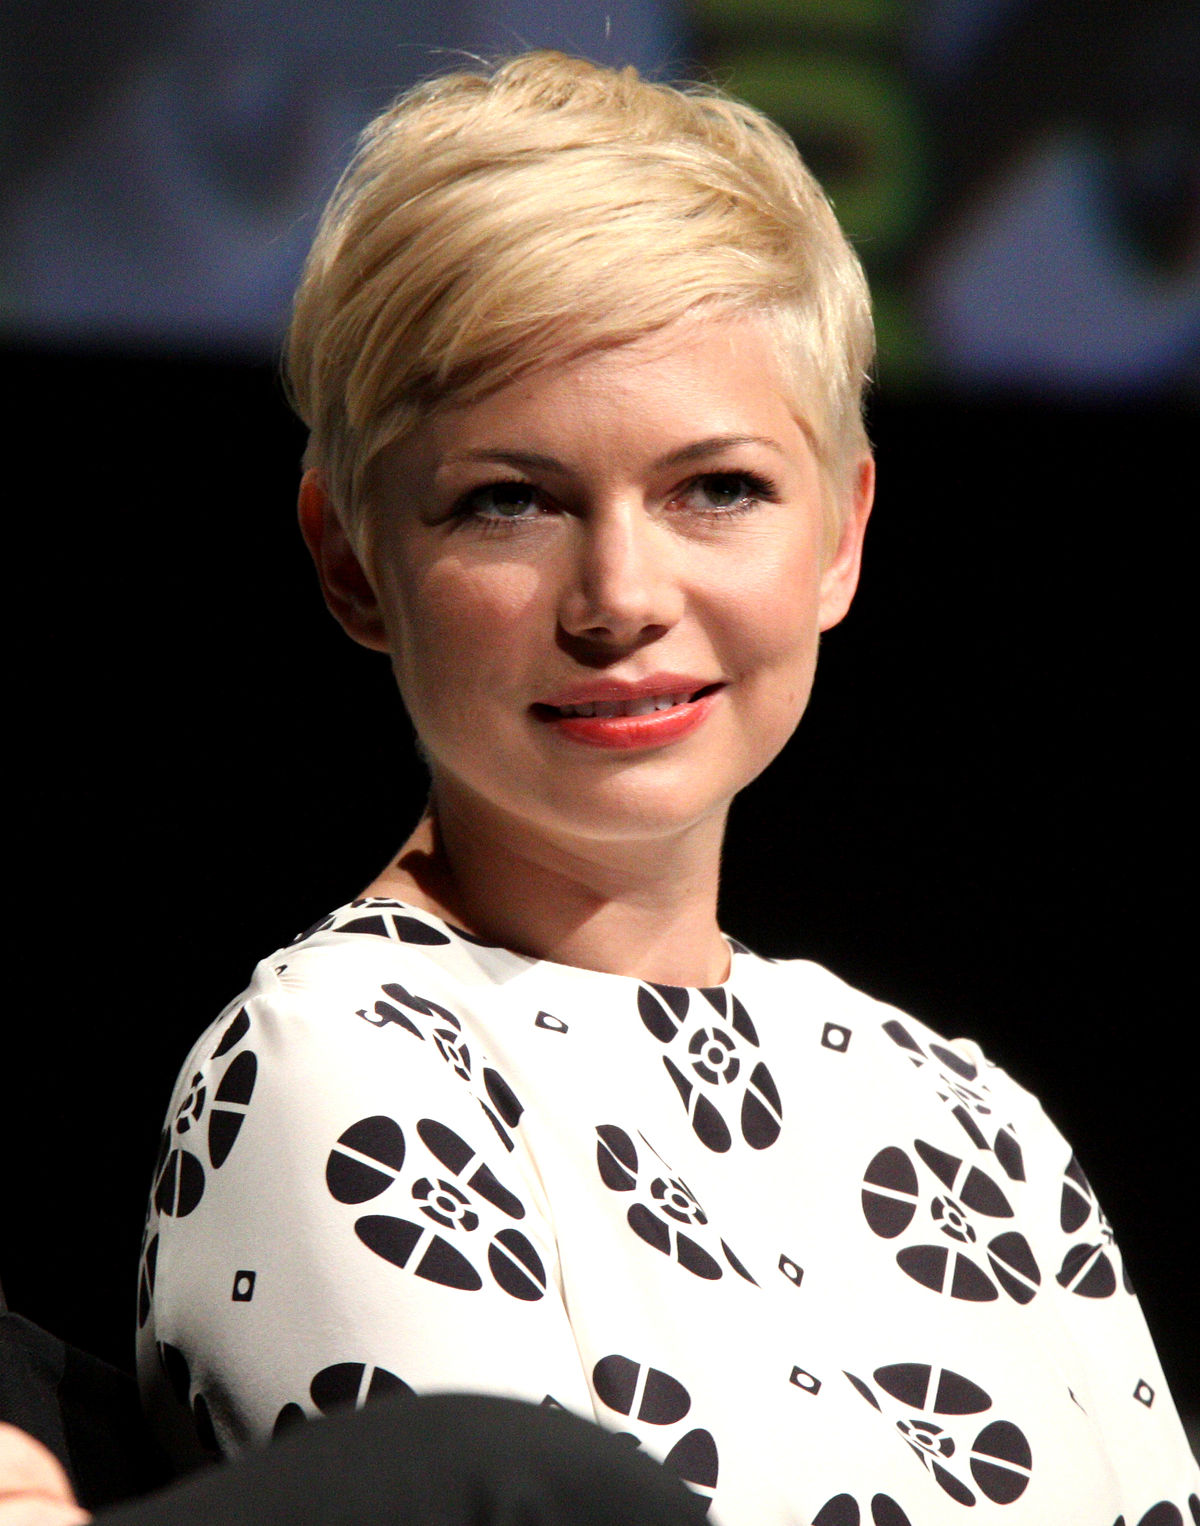 Michelle Williams (actress) - Wikipedia Michelle Williams